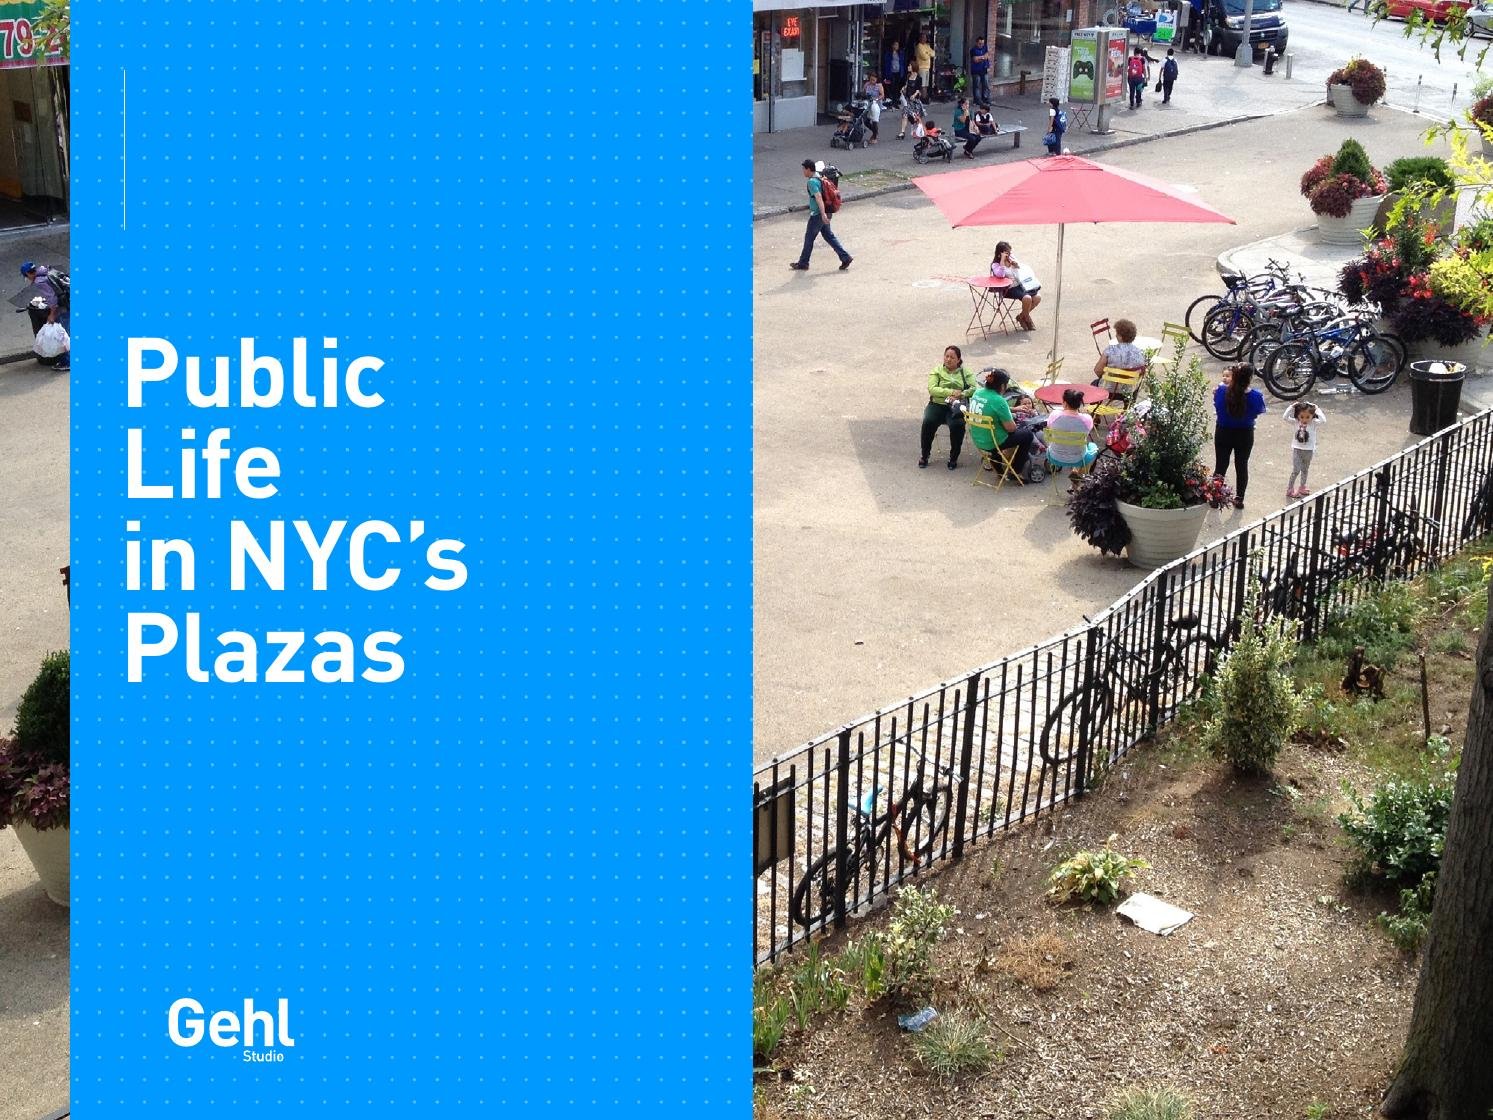 The Presentation: Public Life in NYC's Plazas by Gehl